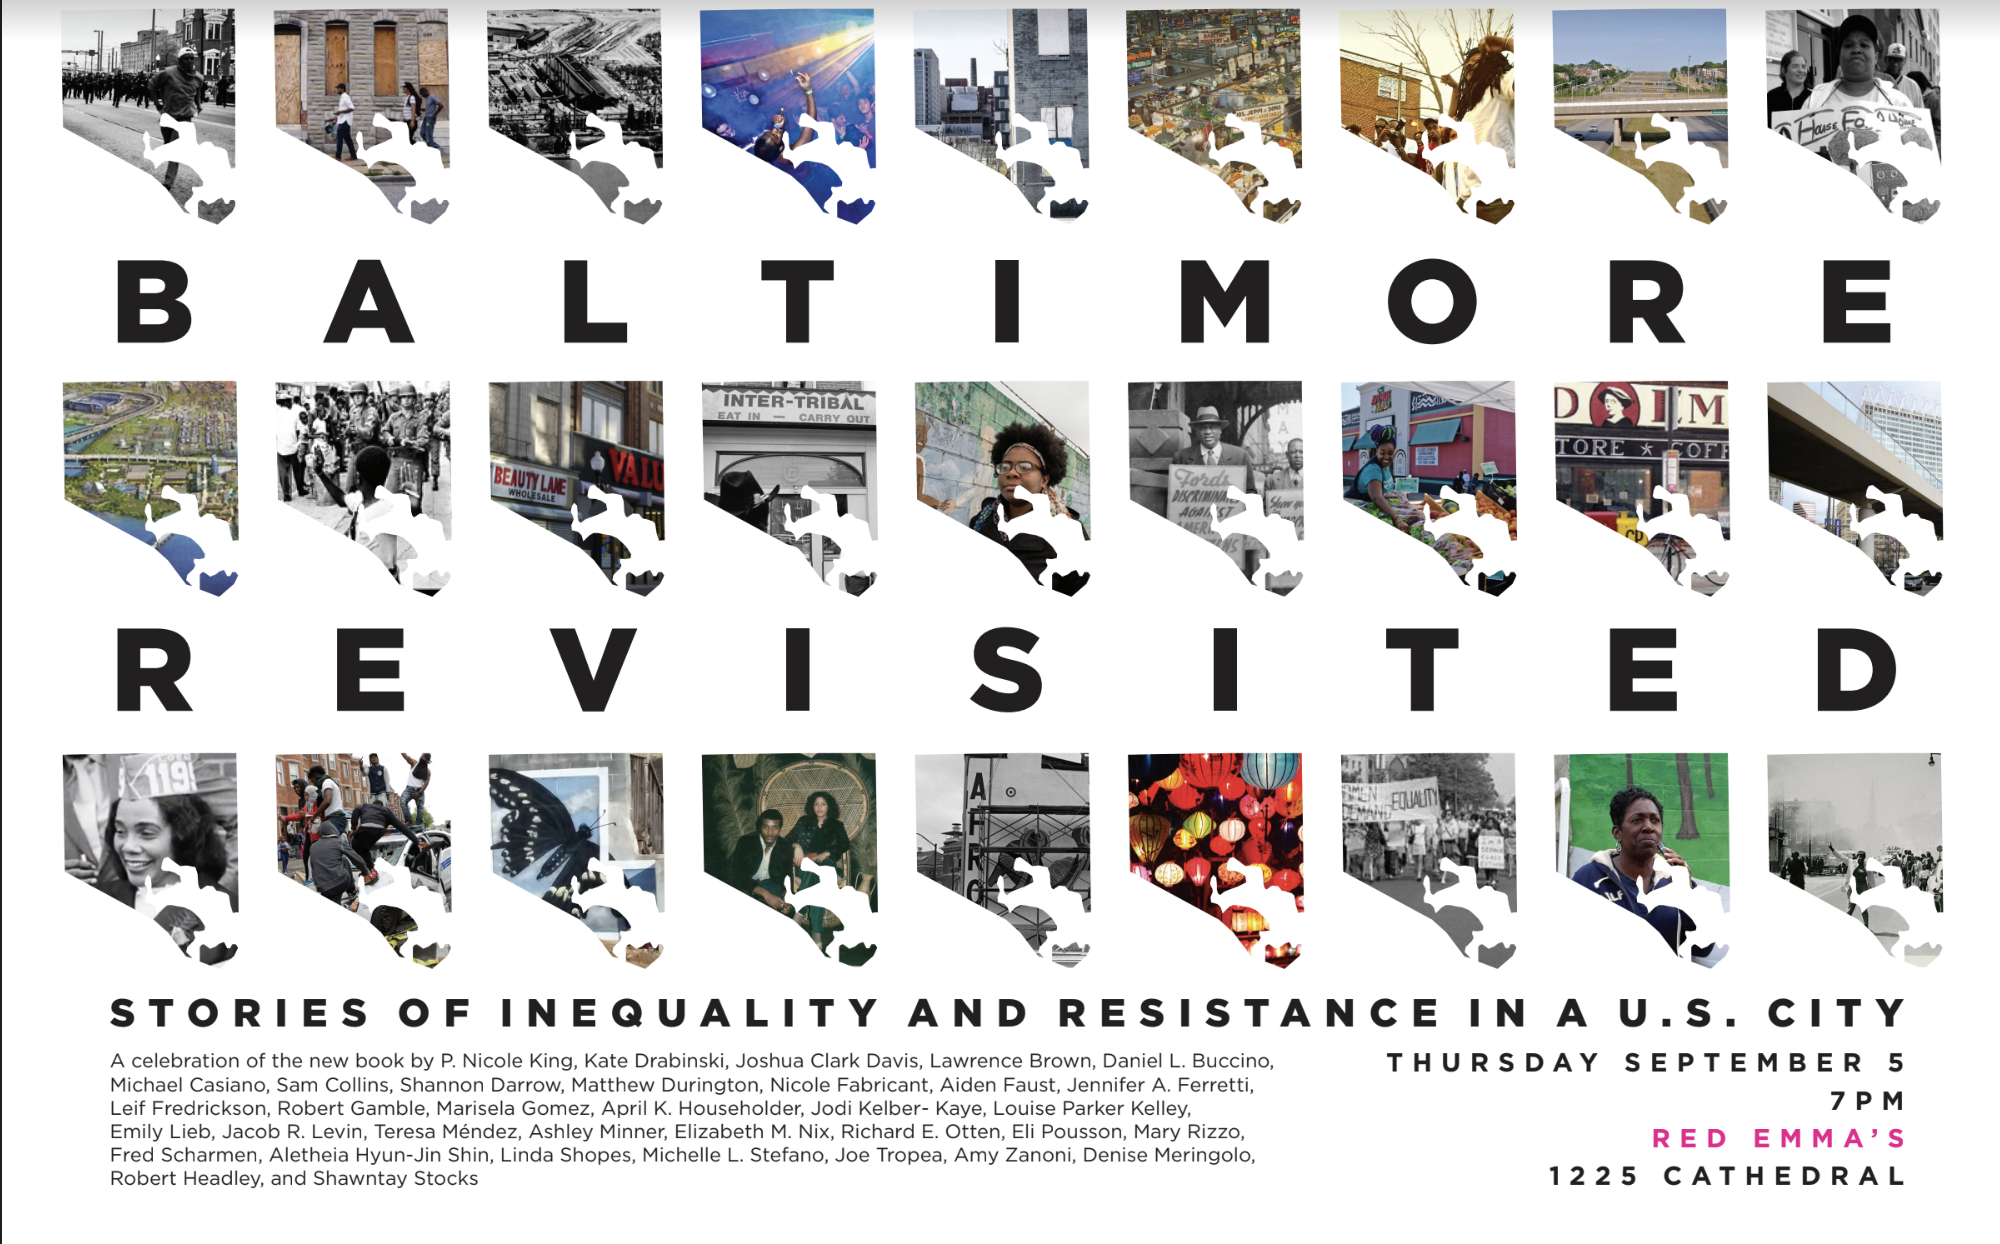 In Baltimore Revisited, UMBC and community authors reflect on the city's history of inequality and resistance